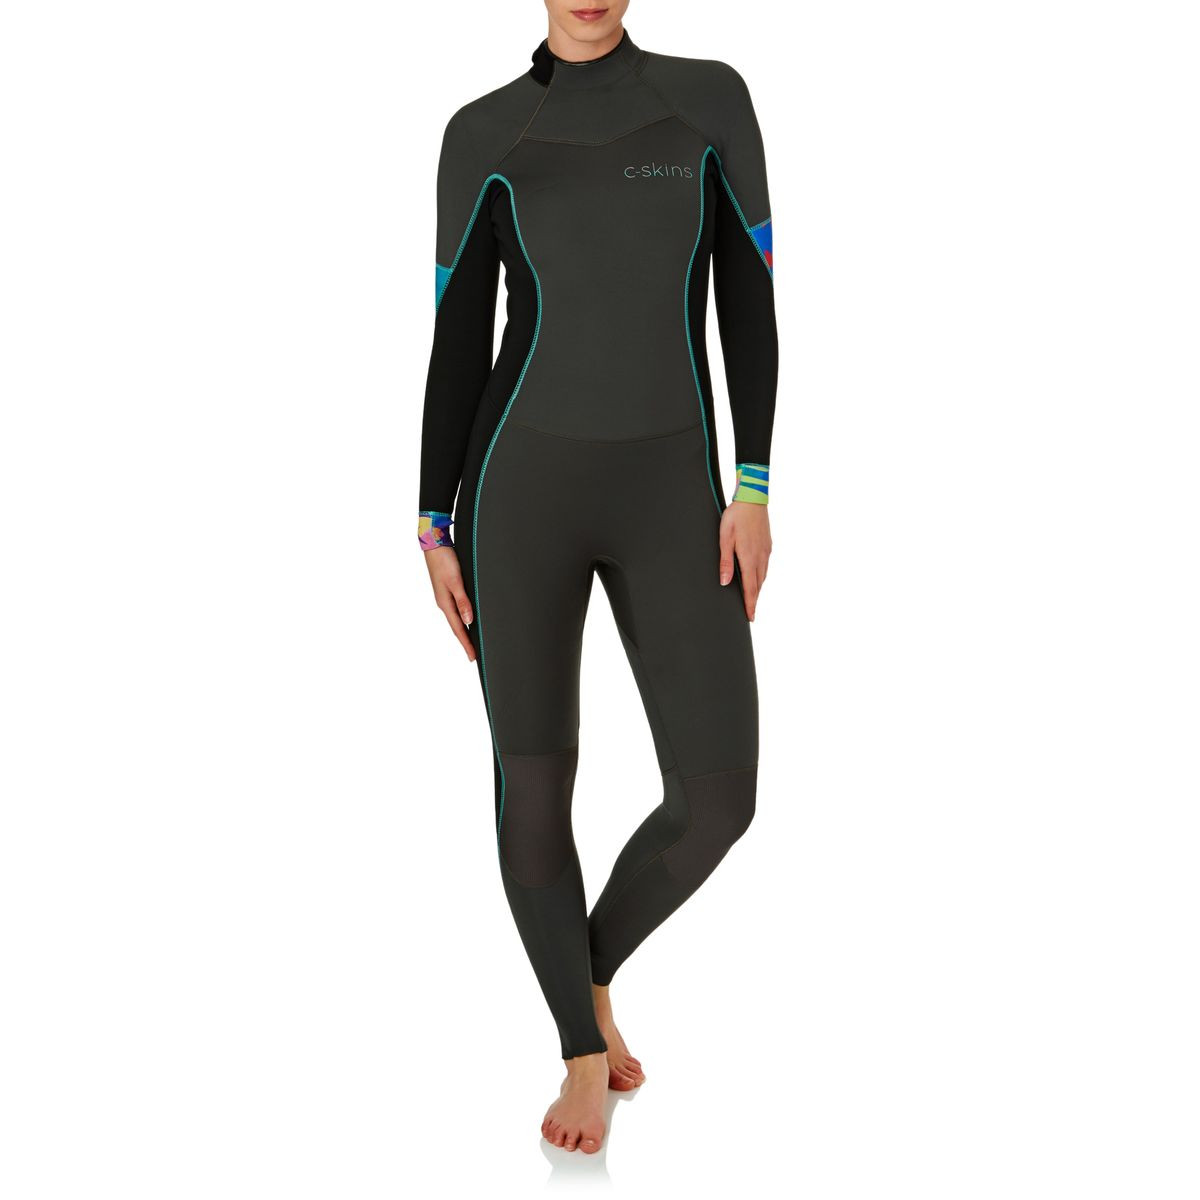 C-Skins Womens Solace 3/2mm 2017 Back Zip GBS Wetsuit - Gunmetal/ Black/ Tropic Trees